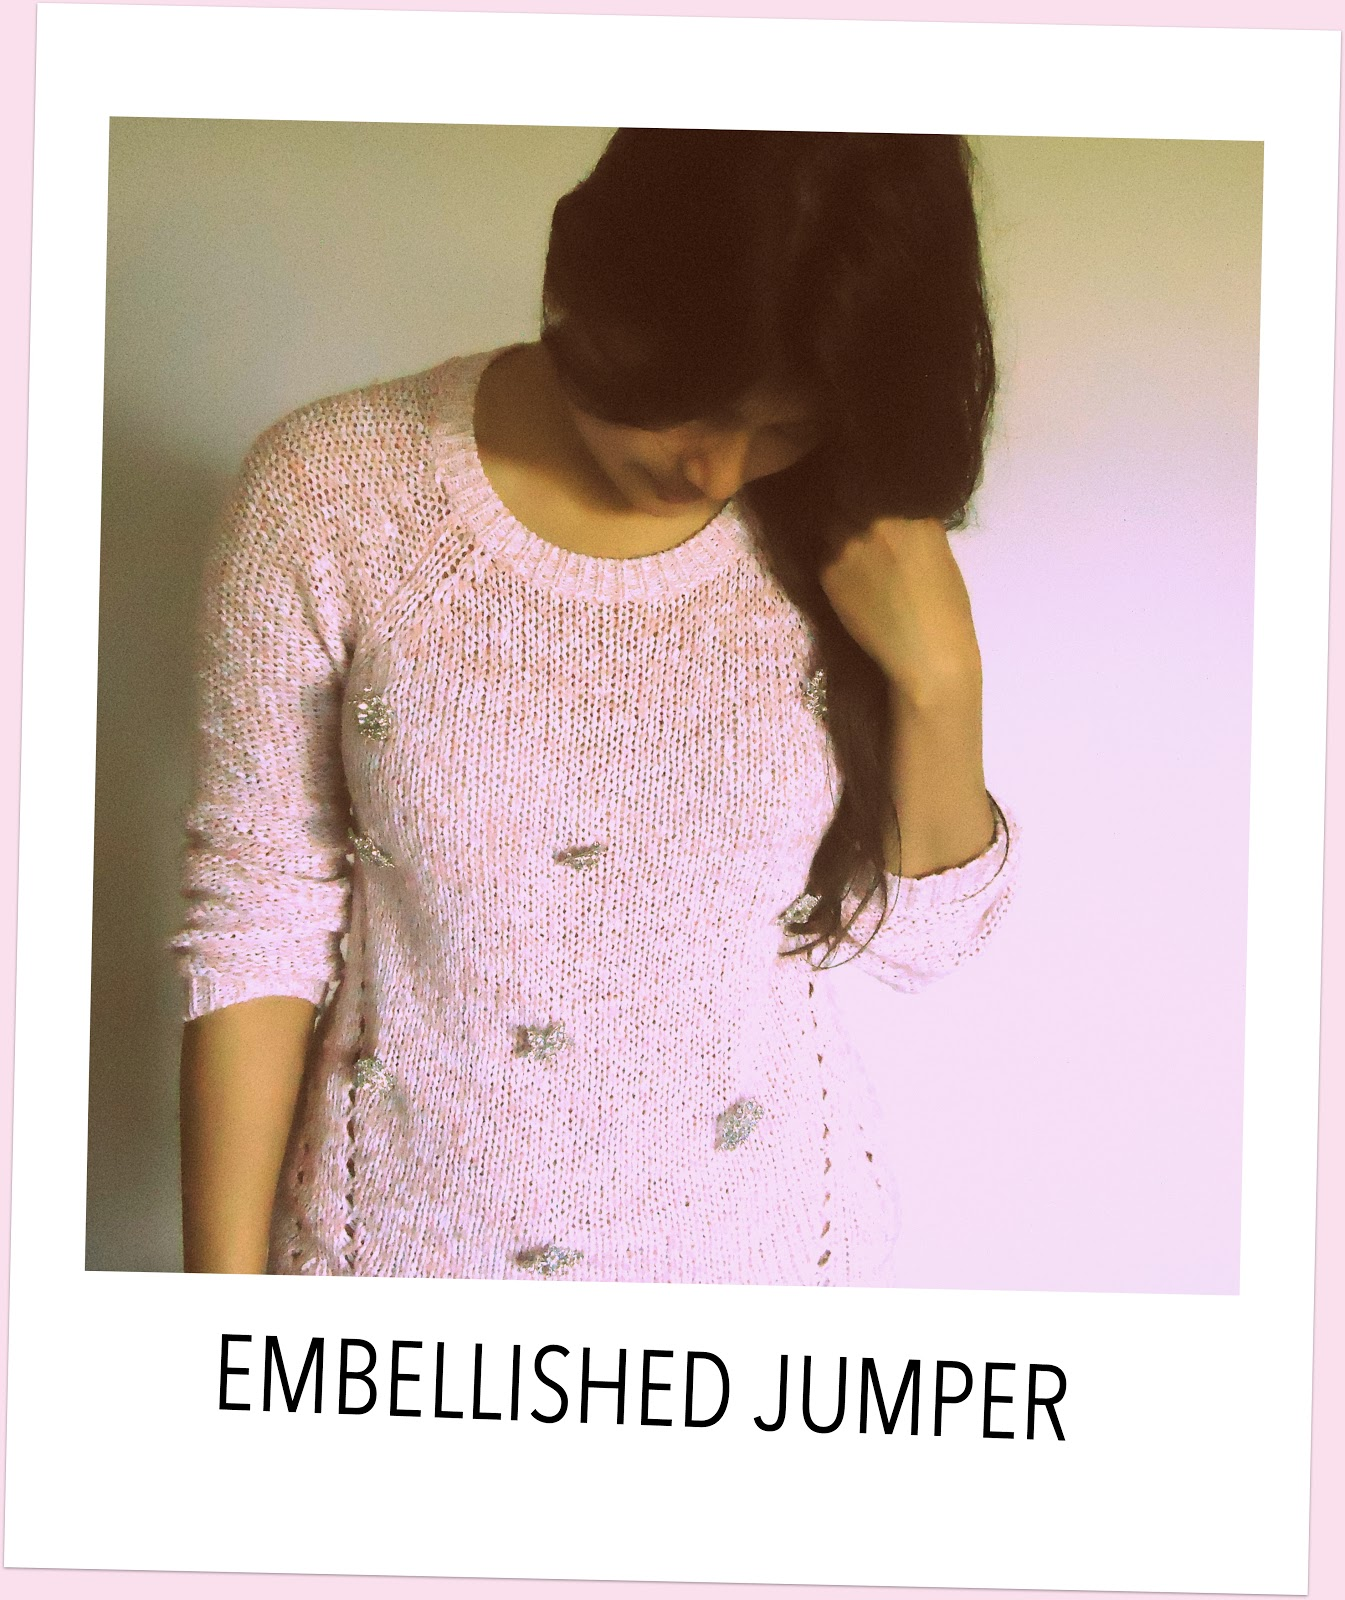 http://pridenstyle.blogspot.co.uk/2015/01/diy-brooch-embellished-jumper.html